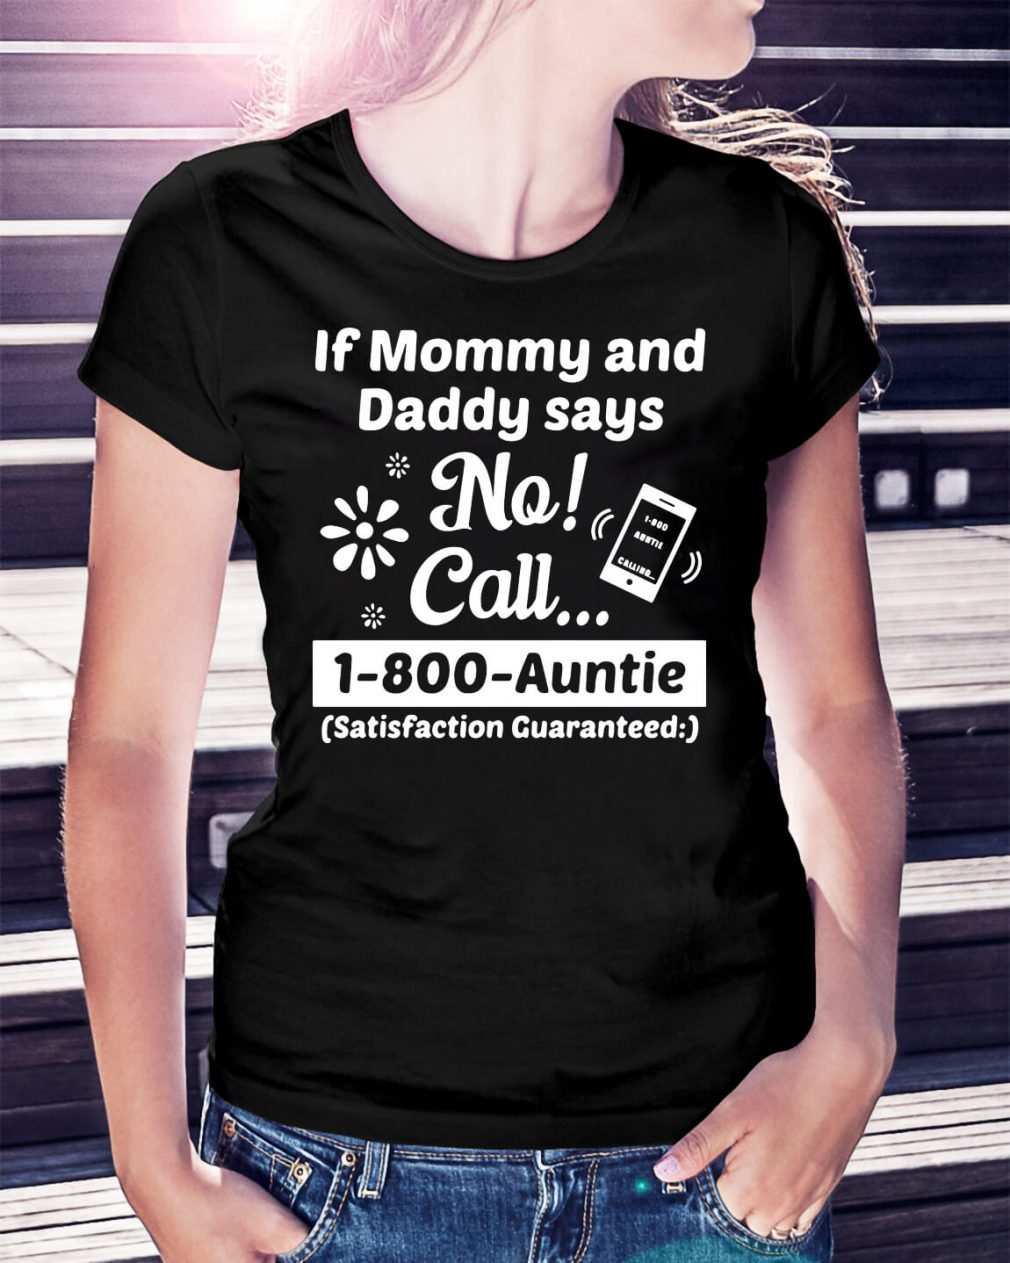 If mommy and daddy says no call 1-800-Auntie shirt